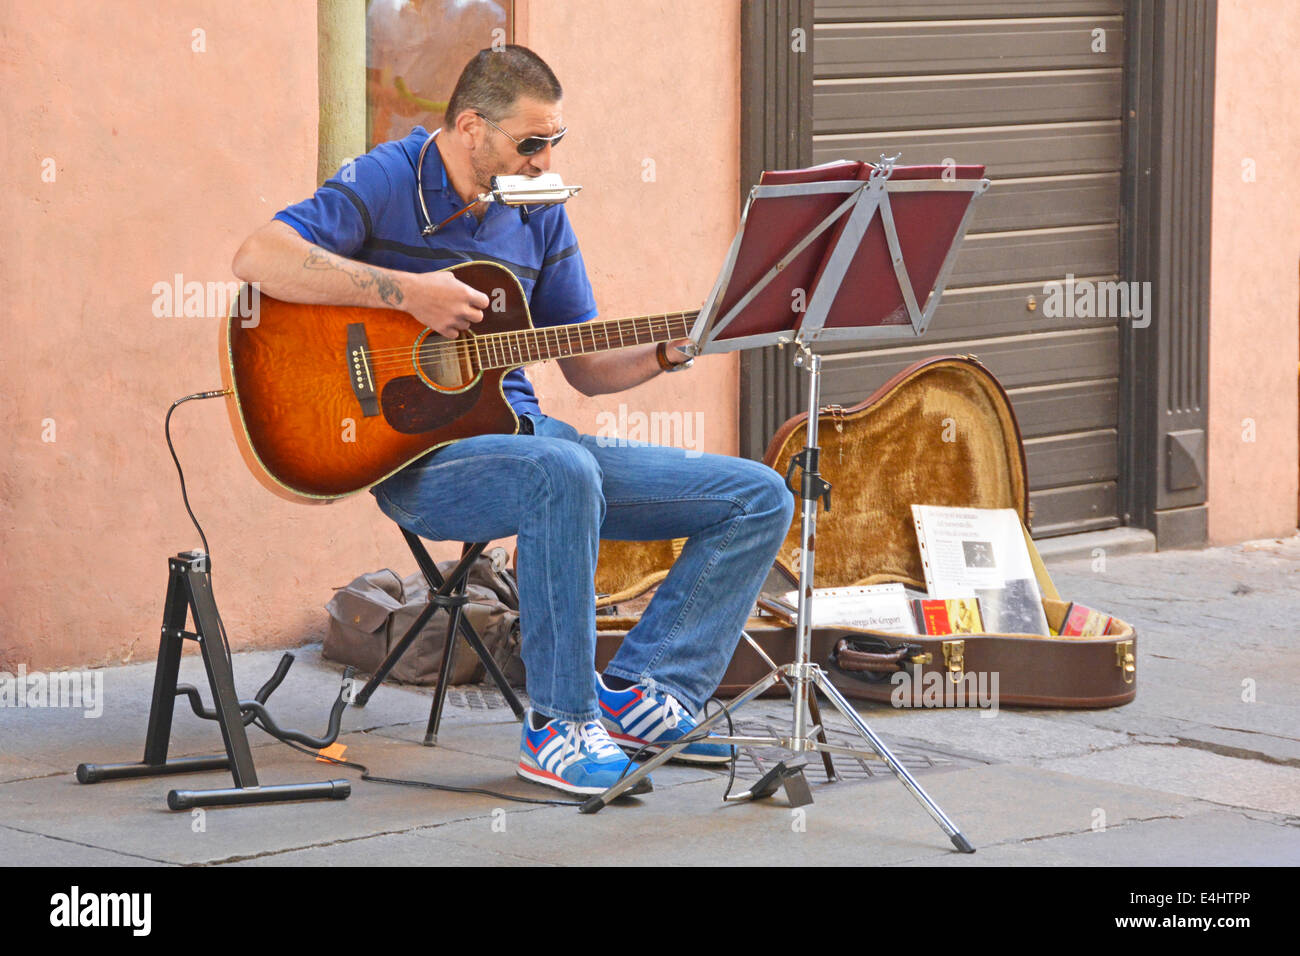 Street musician busker sitting beside a small display of his recorded music Ravenna Emilia Romagna Italy - Stock Image